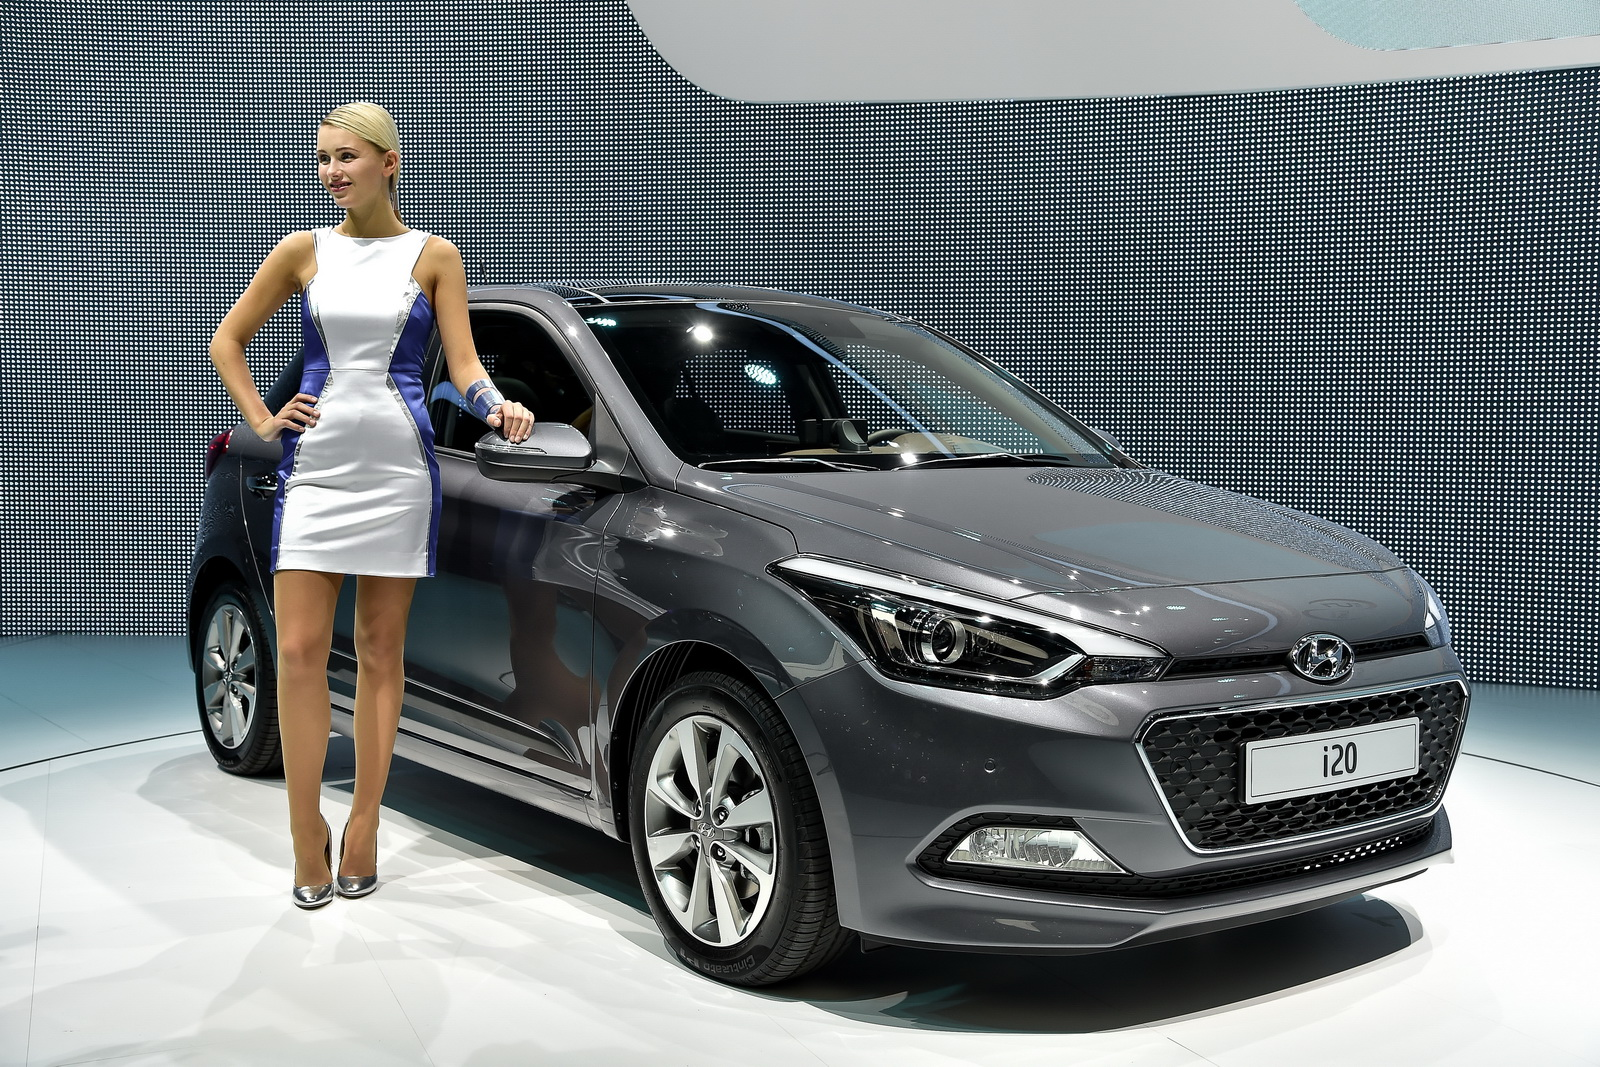 Hyundai i20 Coupe is a 3-door i20 after the Koreans remove two doors